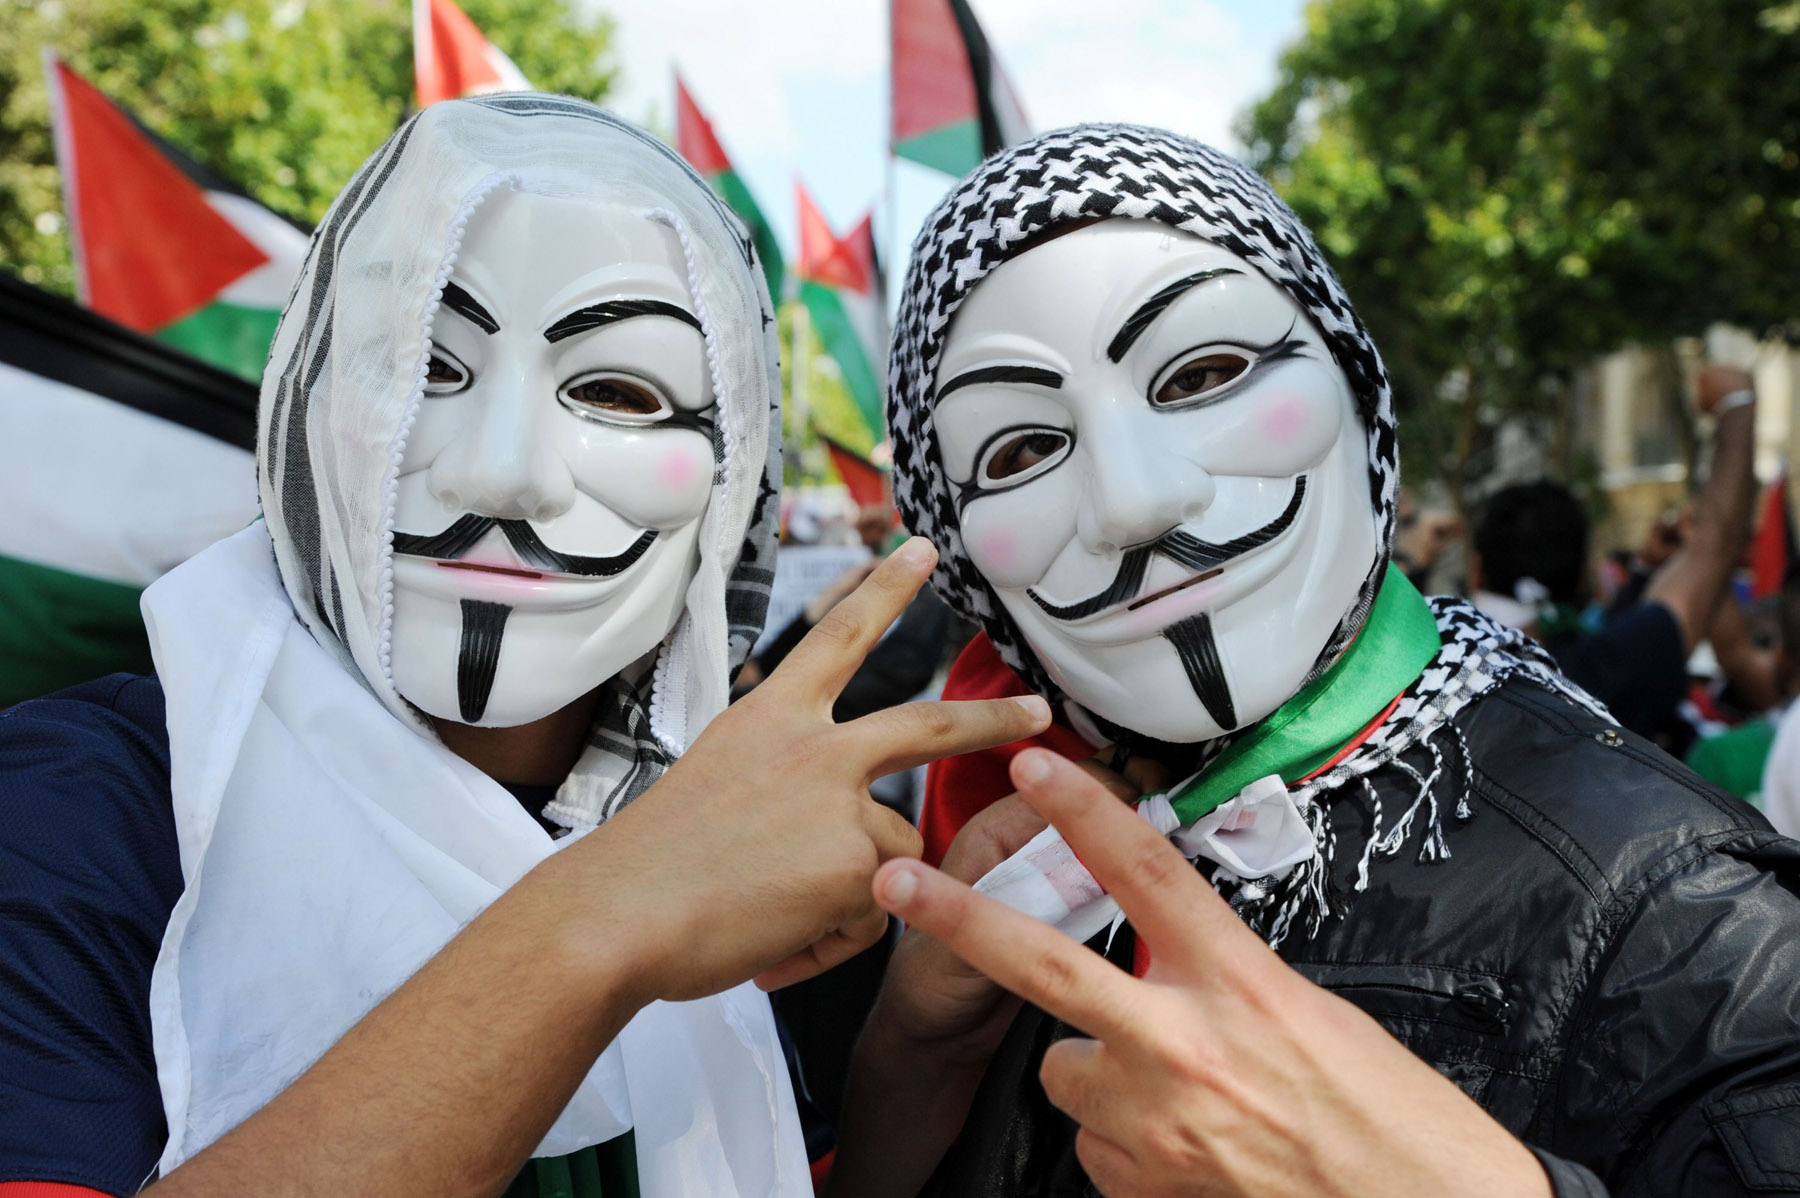 Digital resistance. Pro-Palestinian activists wearing Guy Fawkes masks take part in a demonstration in Paris.                                   (AFP)